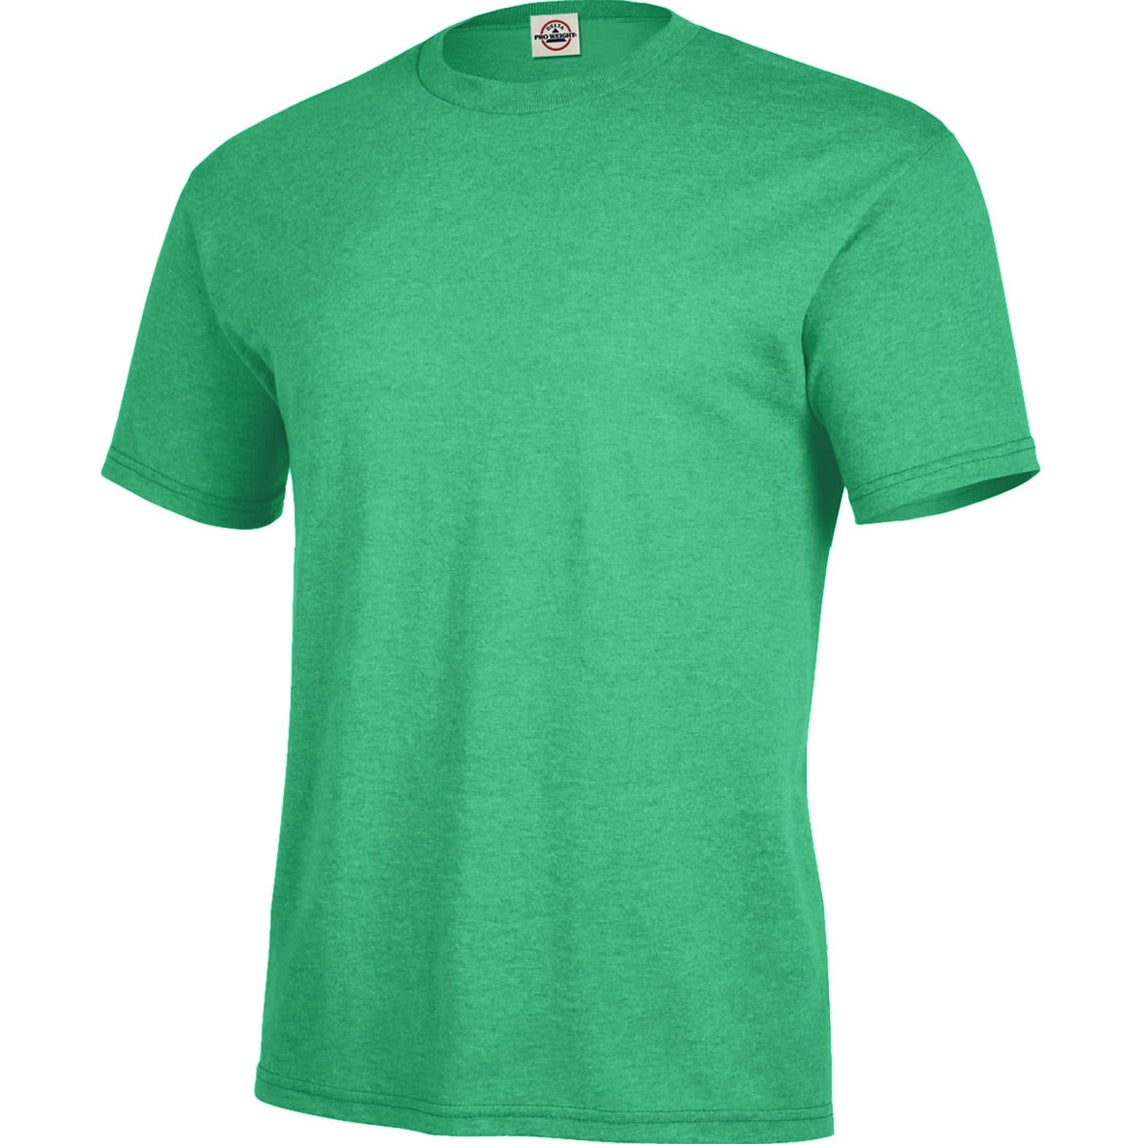 Delta pro weight unisex short sleeve t shirt colors for Custom full color t shirts